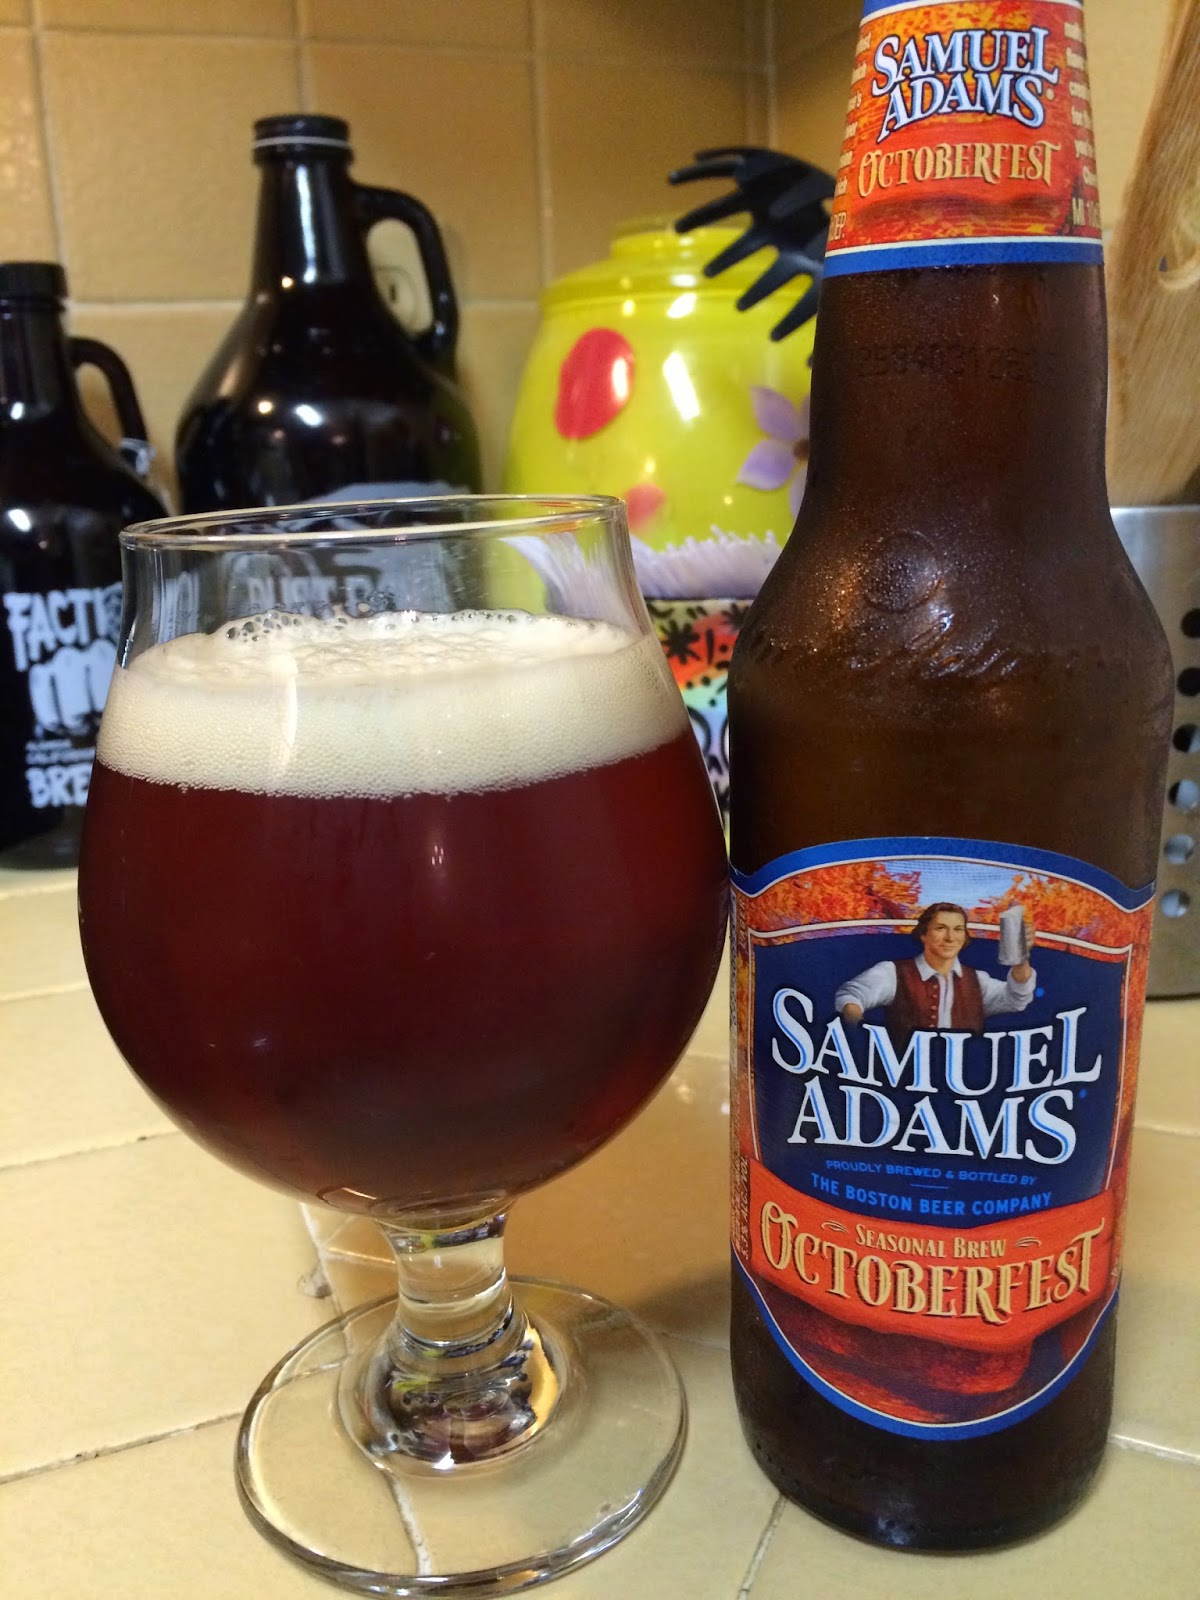 Samuel Adams OctoberFest 1